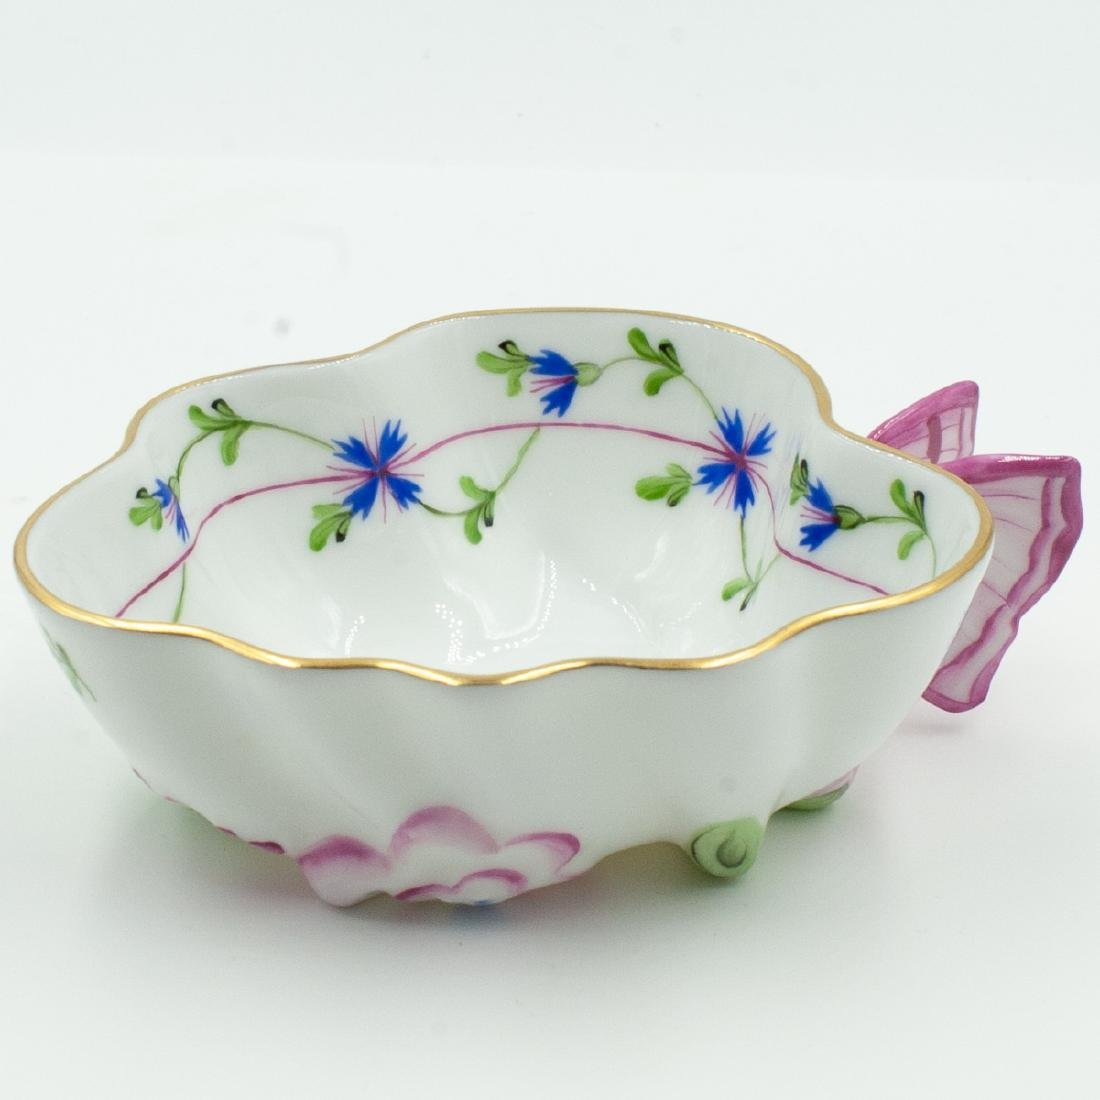 Herend Porcelain Leaf Dish